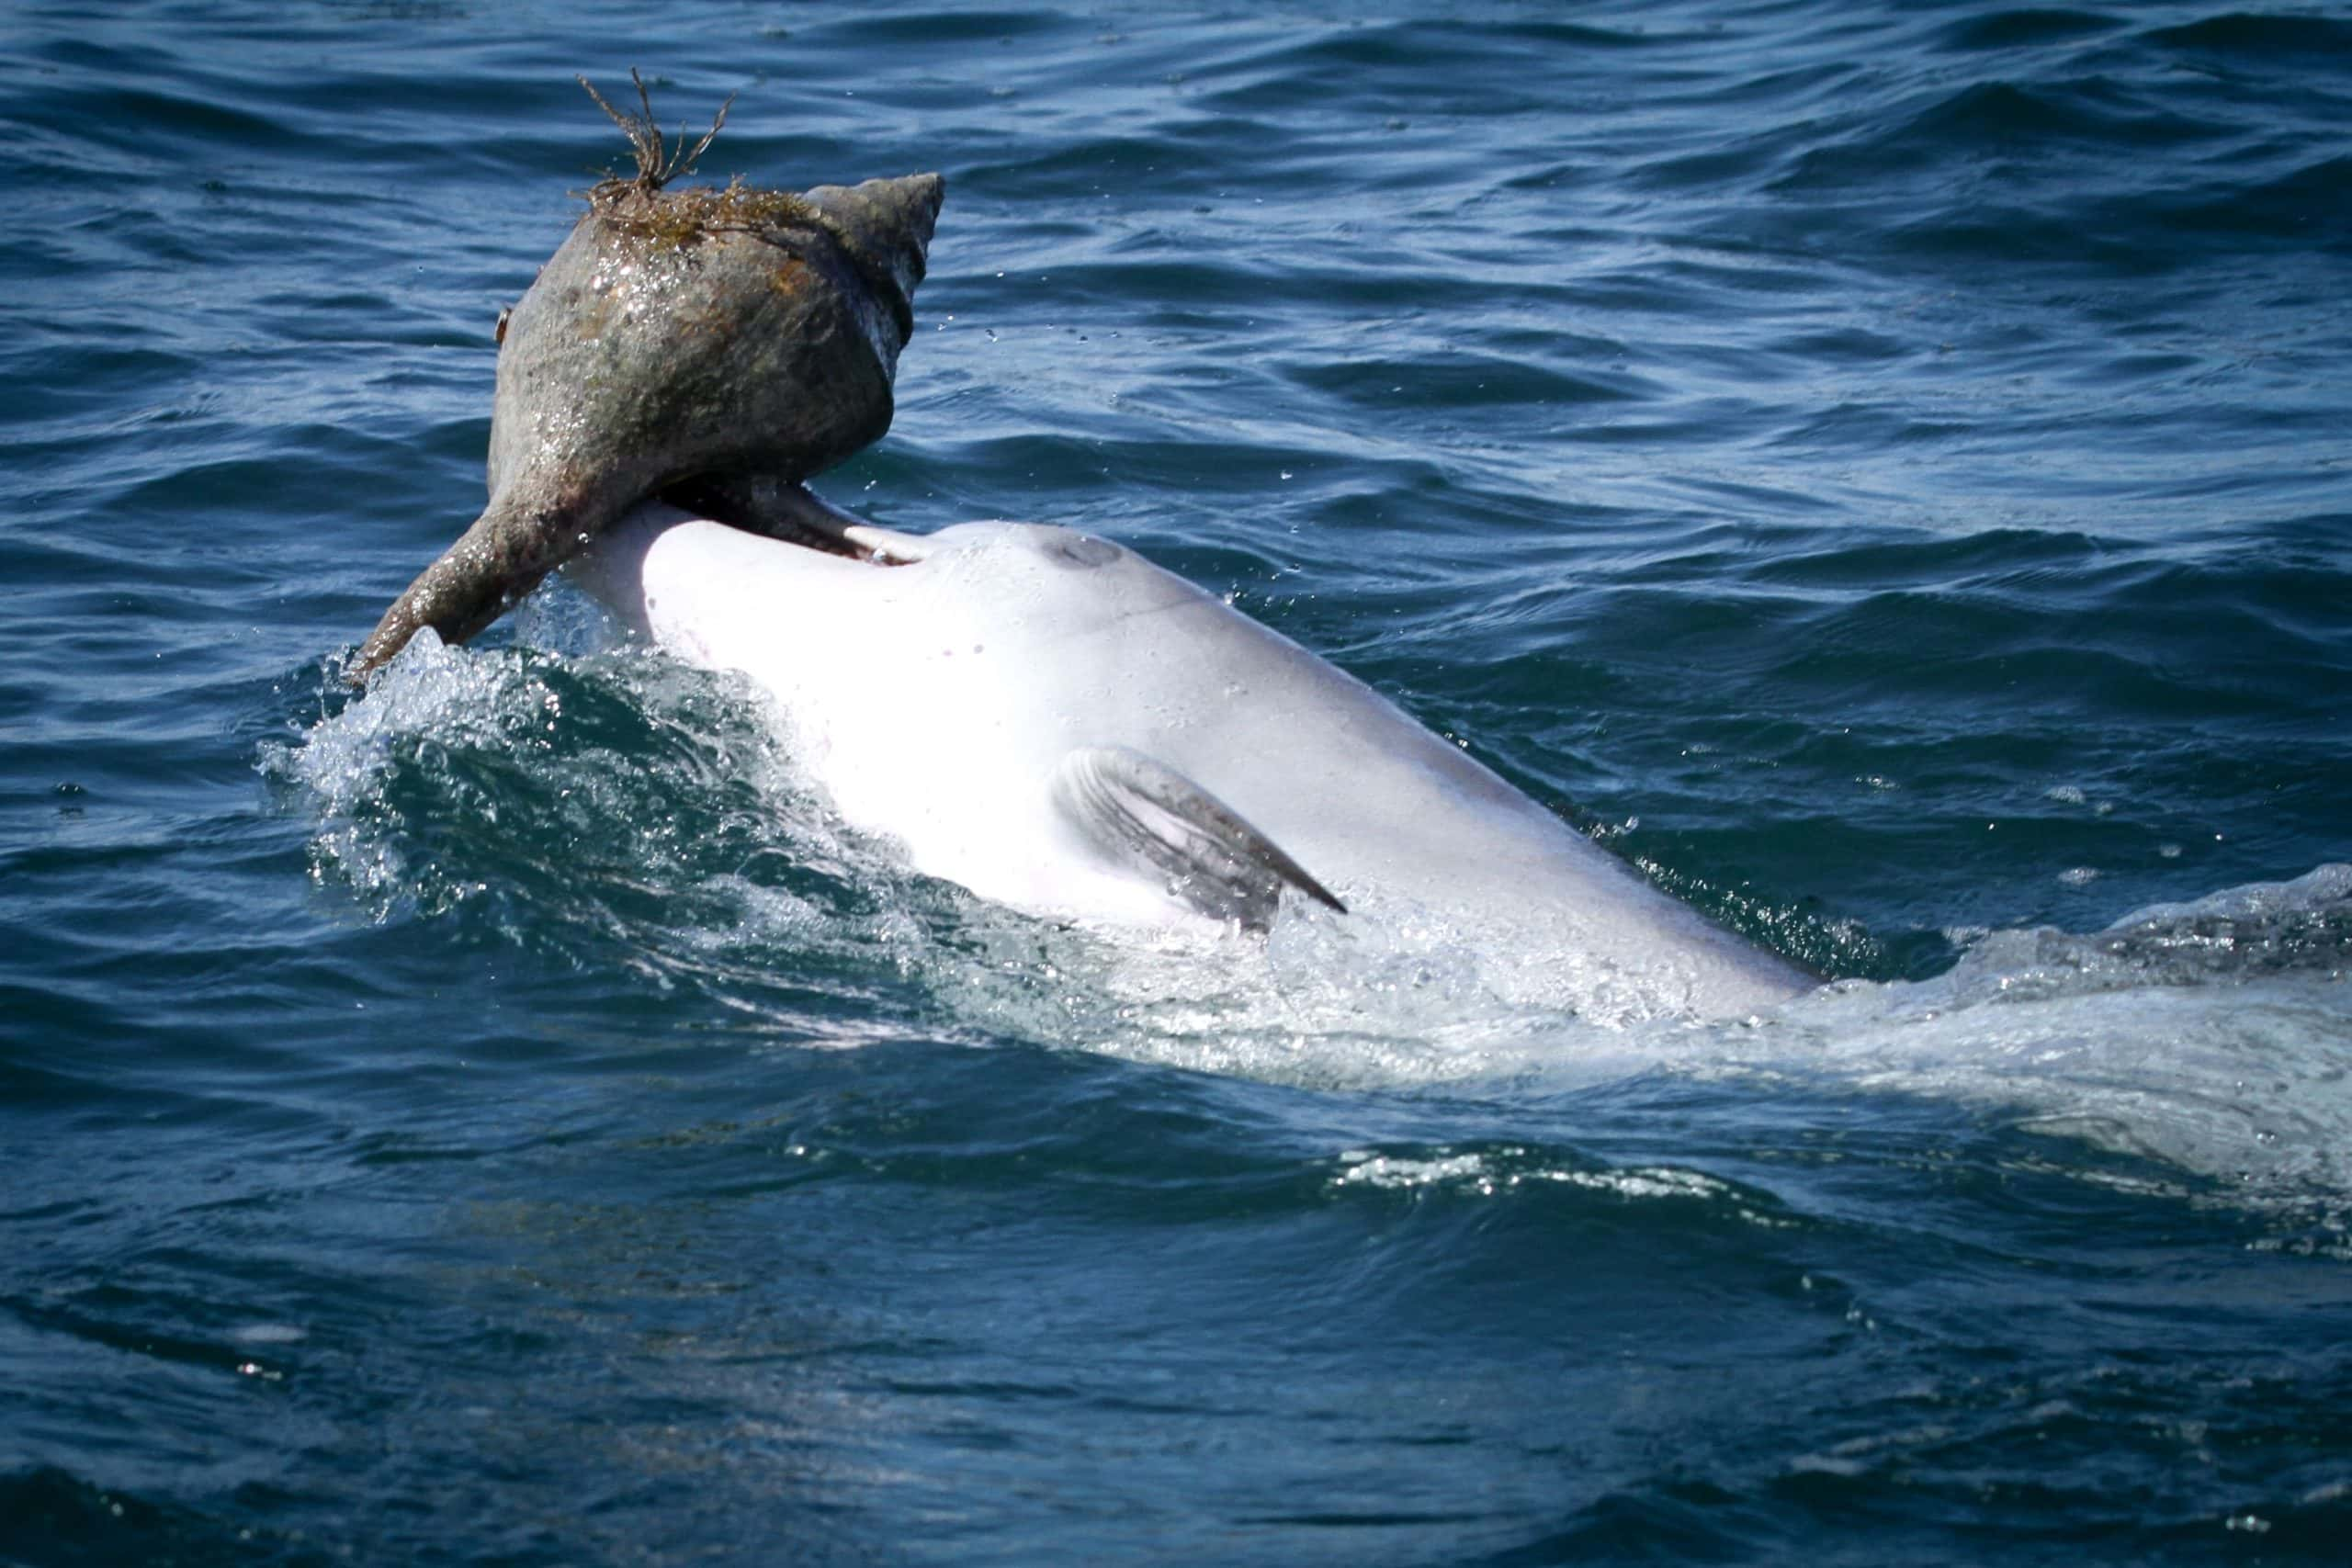 Dolphin using shelling technique to catch prey